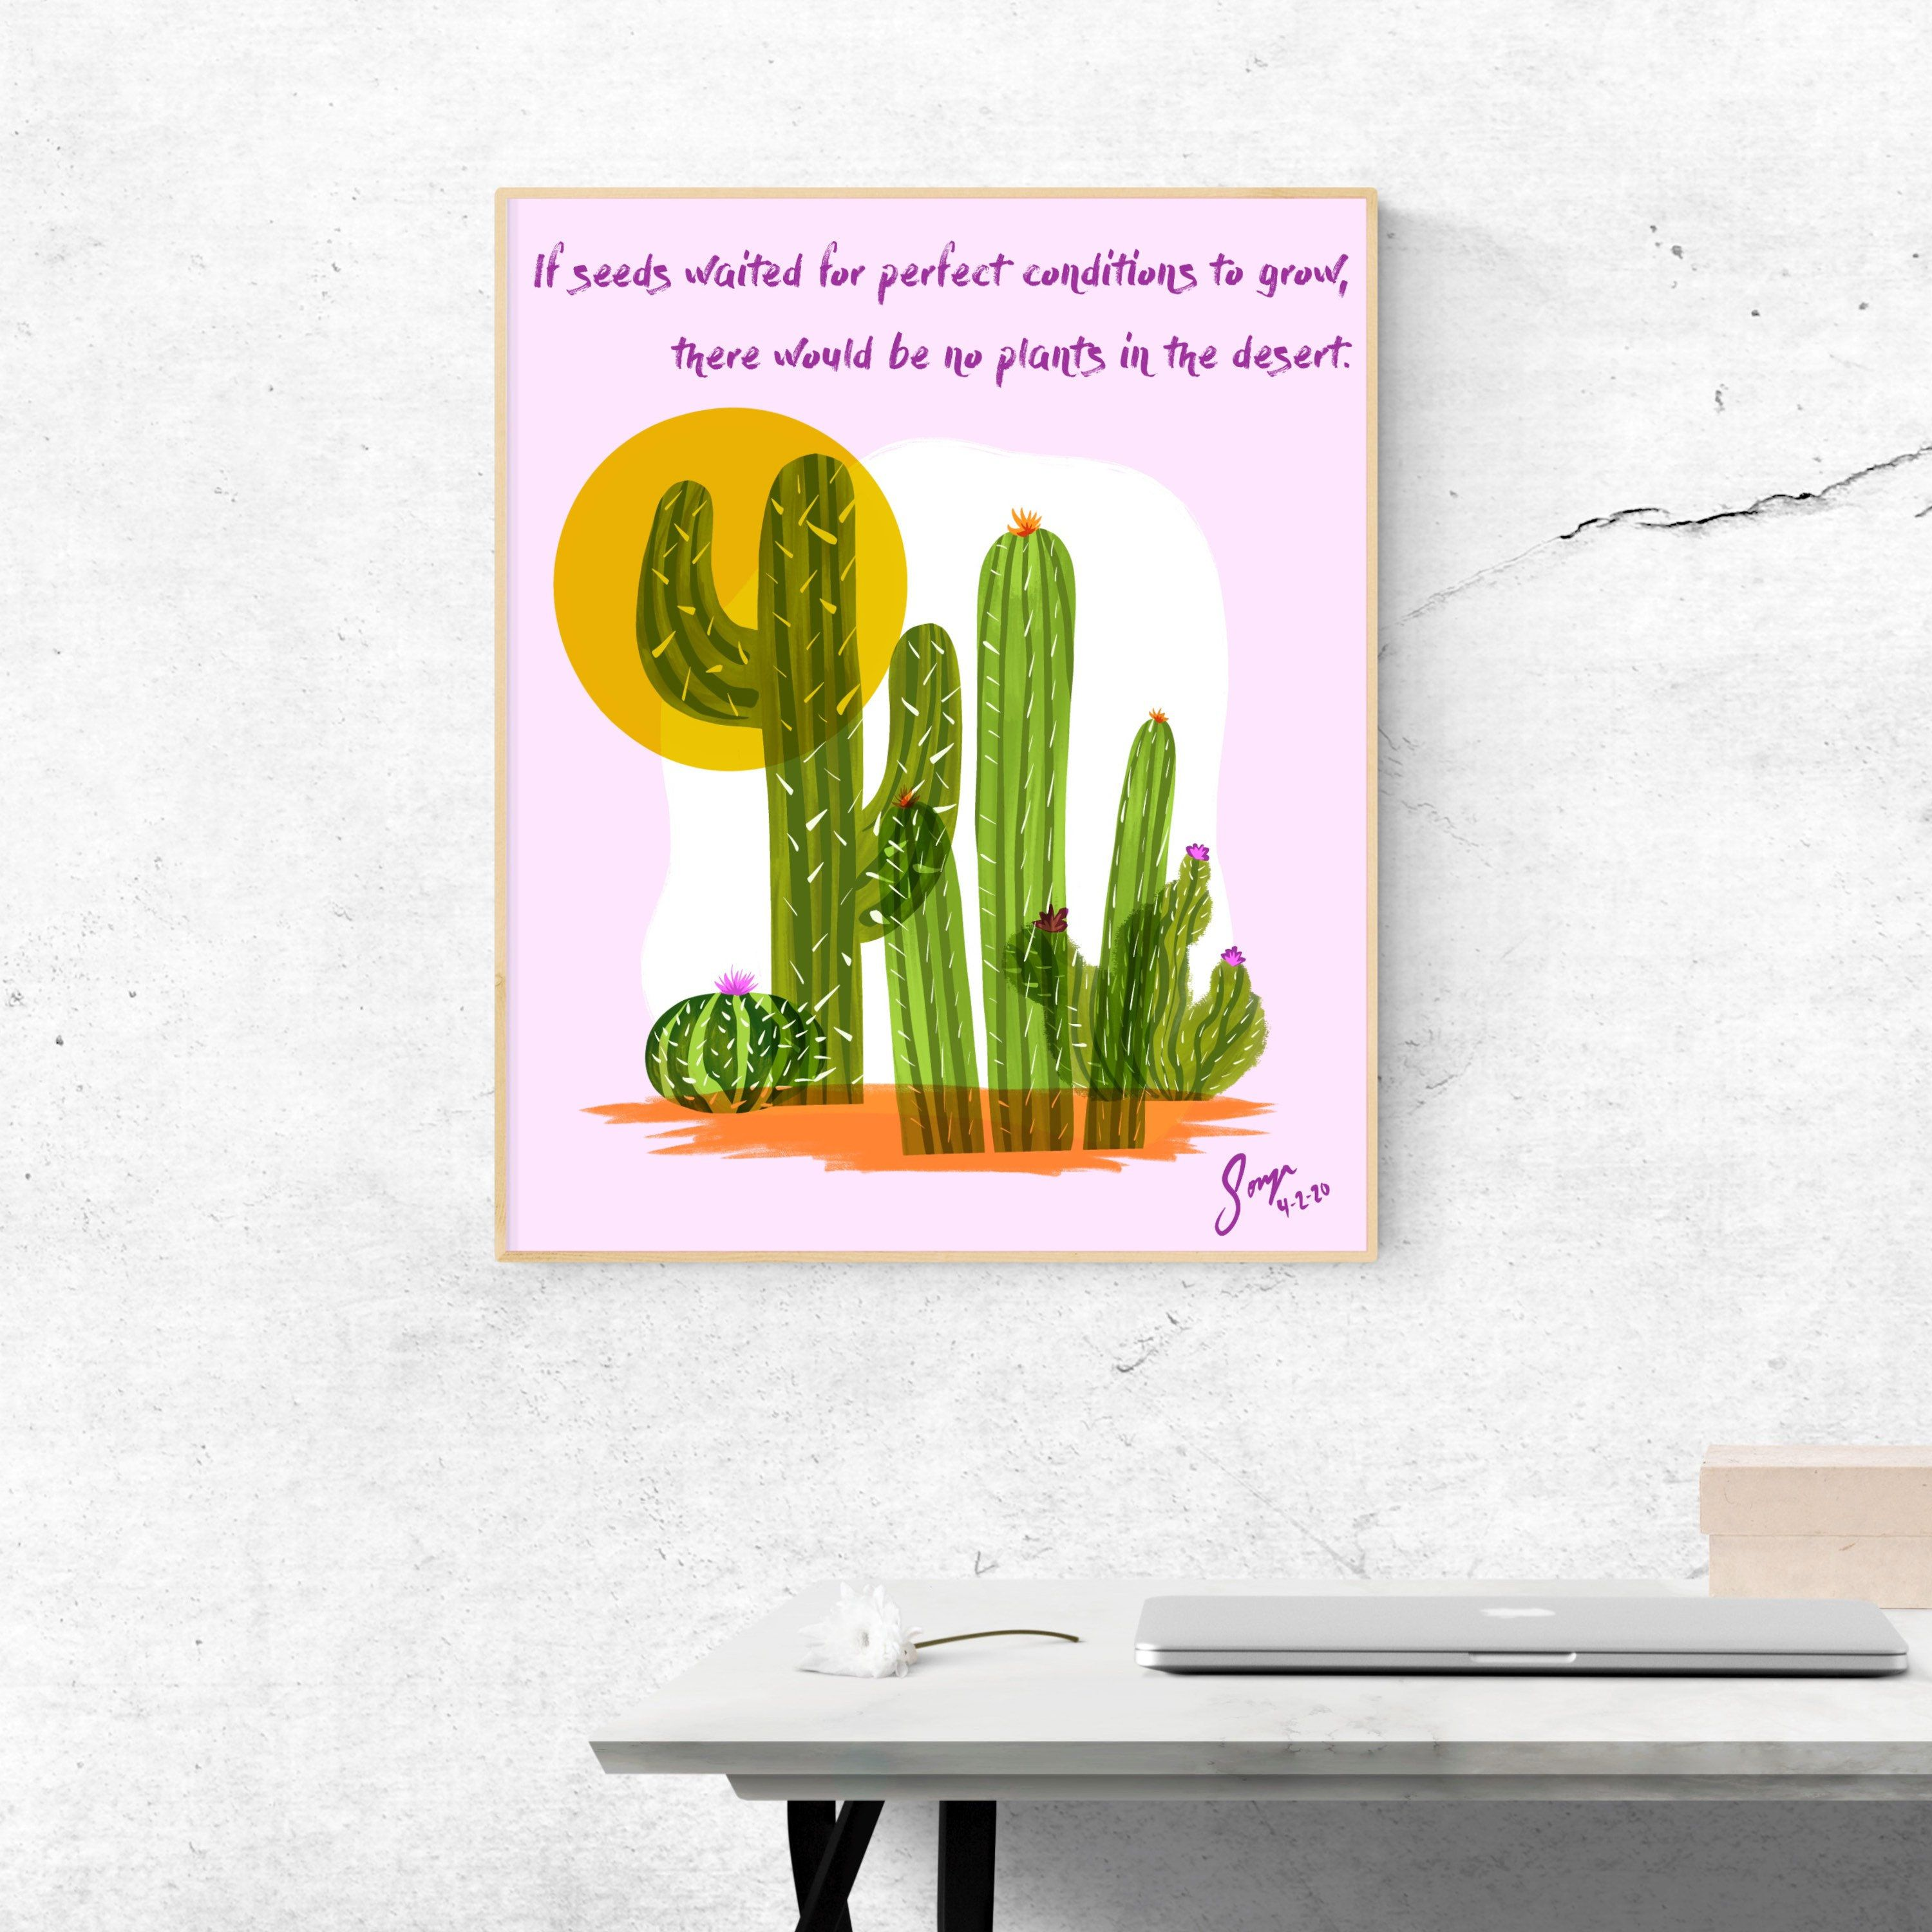 Cactus flower quote illustration etsy in 2020 flower